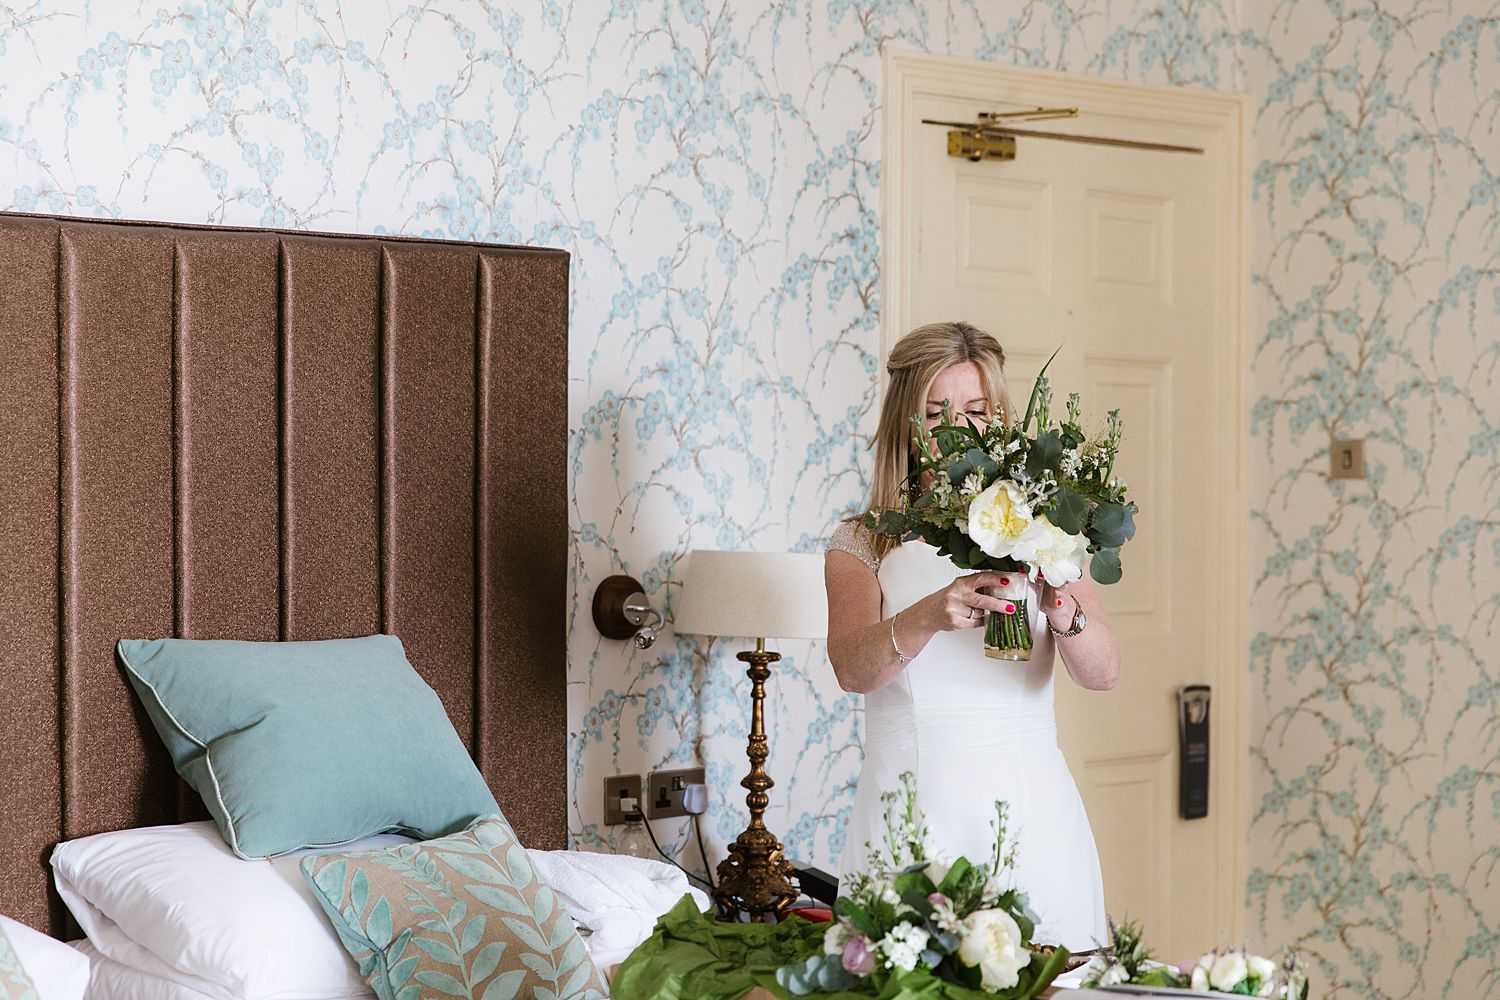 Bride with her bouquet from Brackens florist, Windermere at Storrs Hall wedding